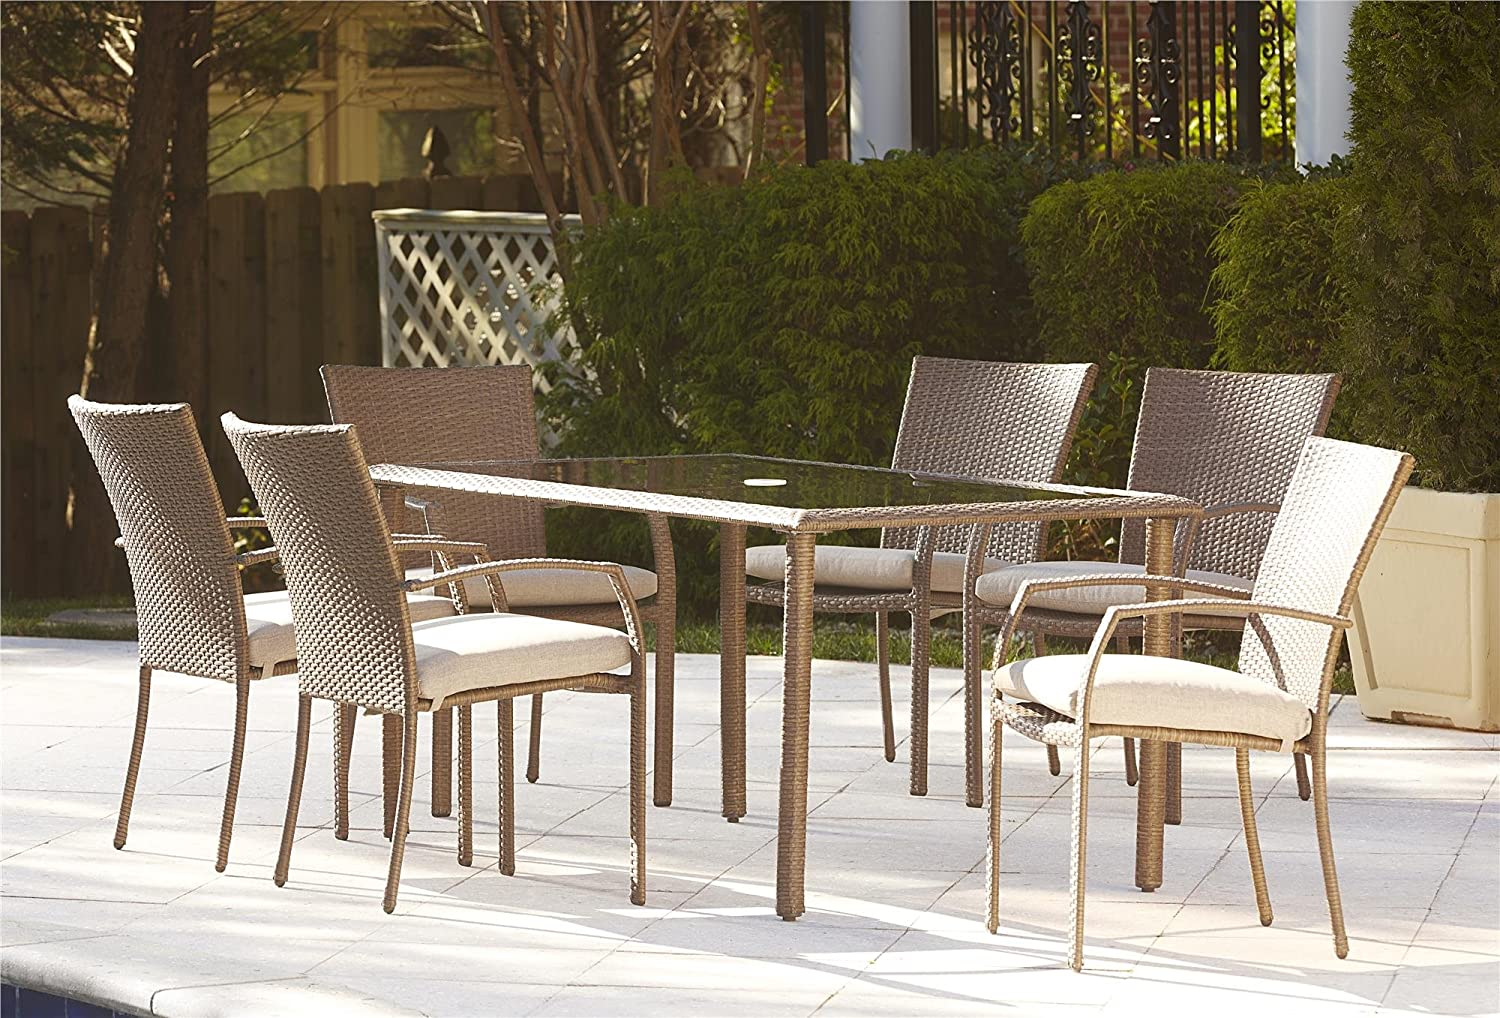 sale set dealer chairs browse outdoor tables furniture locate patio authorized a factory dining winston sets